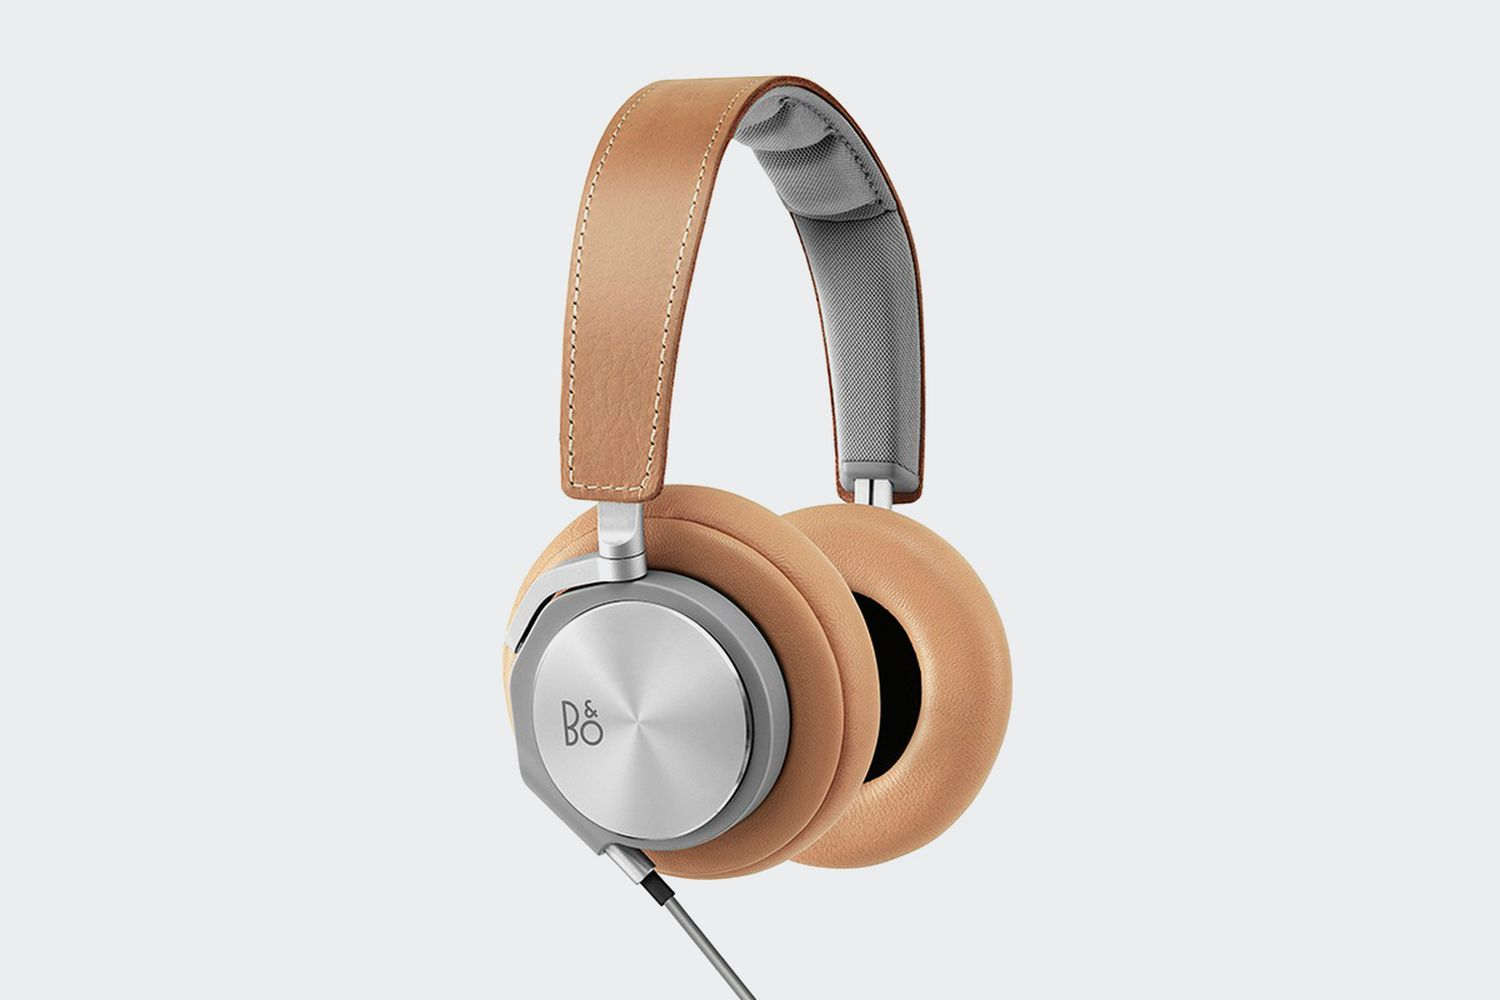 'BEOPLAY H6' Headphones